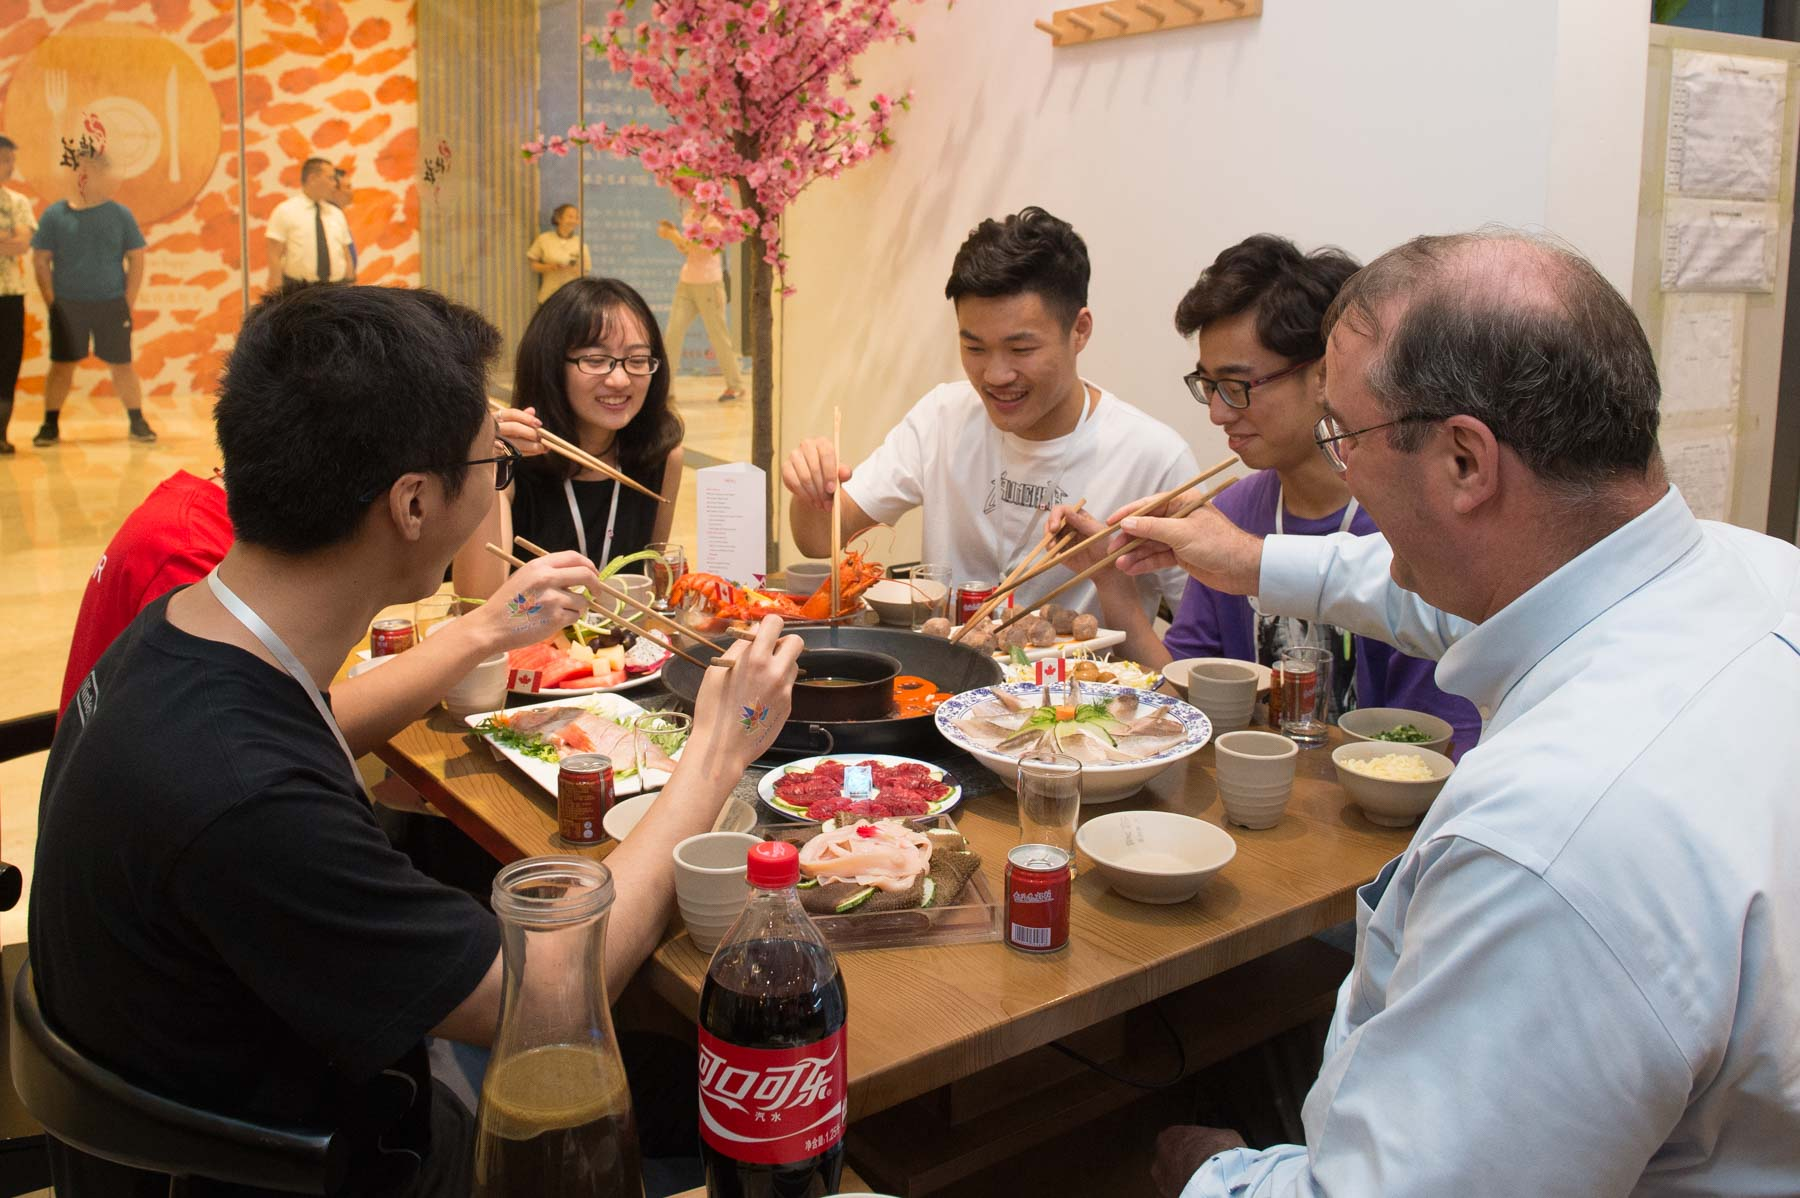 This traditional Chongqing dinner also featured some Canadian-sourced ingredients such as beef and seafood. Mr. Paul Davidson, President and Chief Executive Officer of Universities Canada enjoyed dinner with students who will soon be coming to Canada.